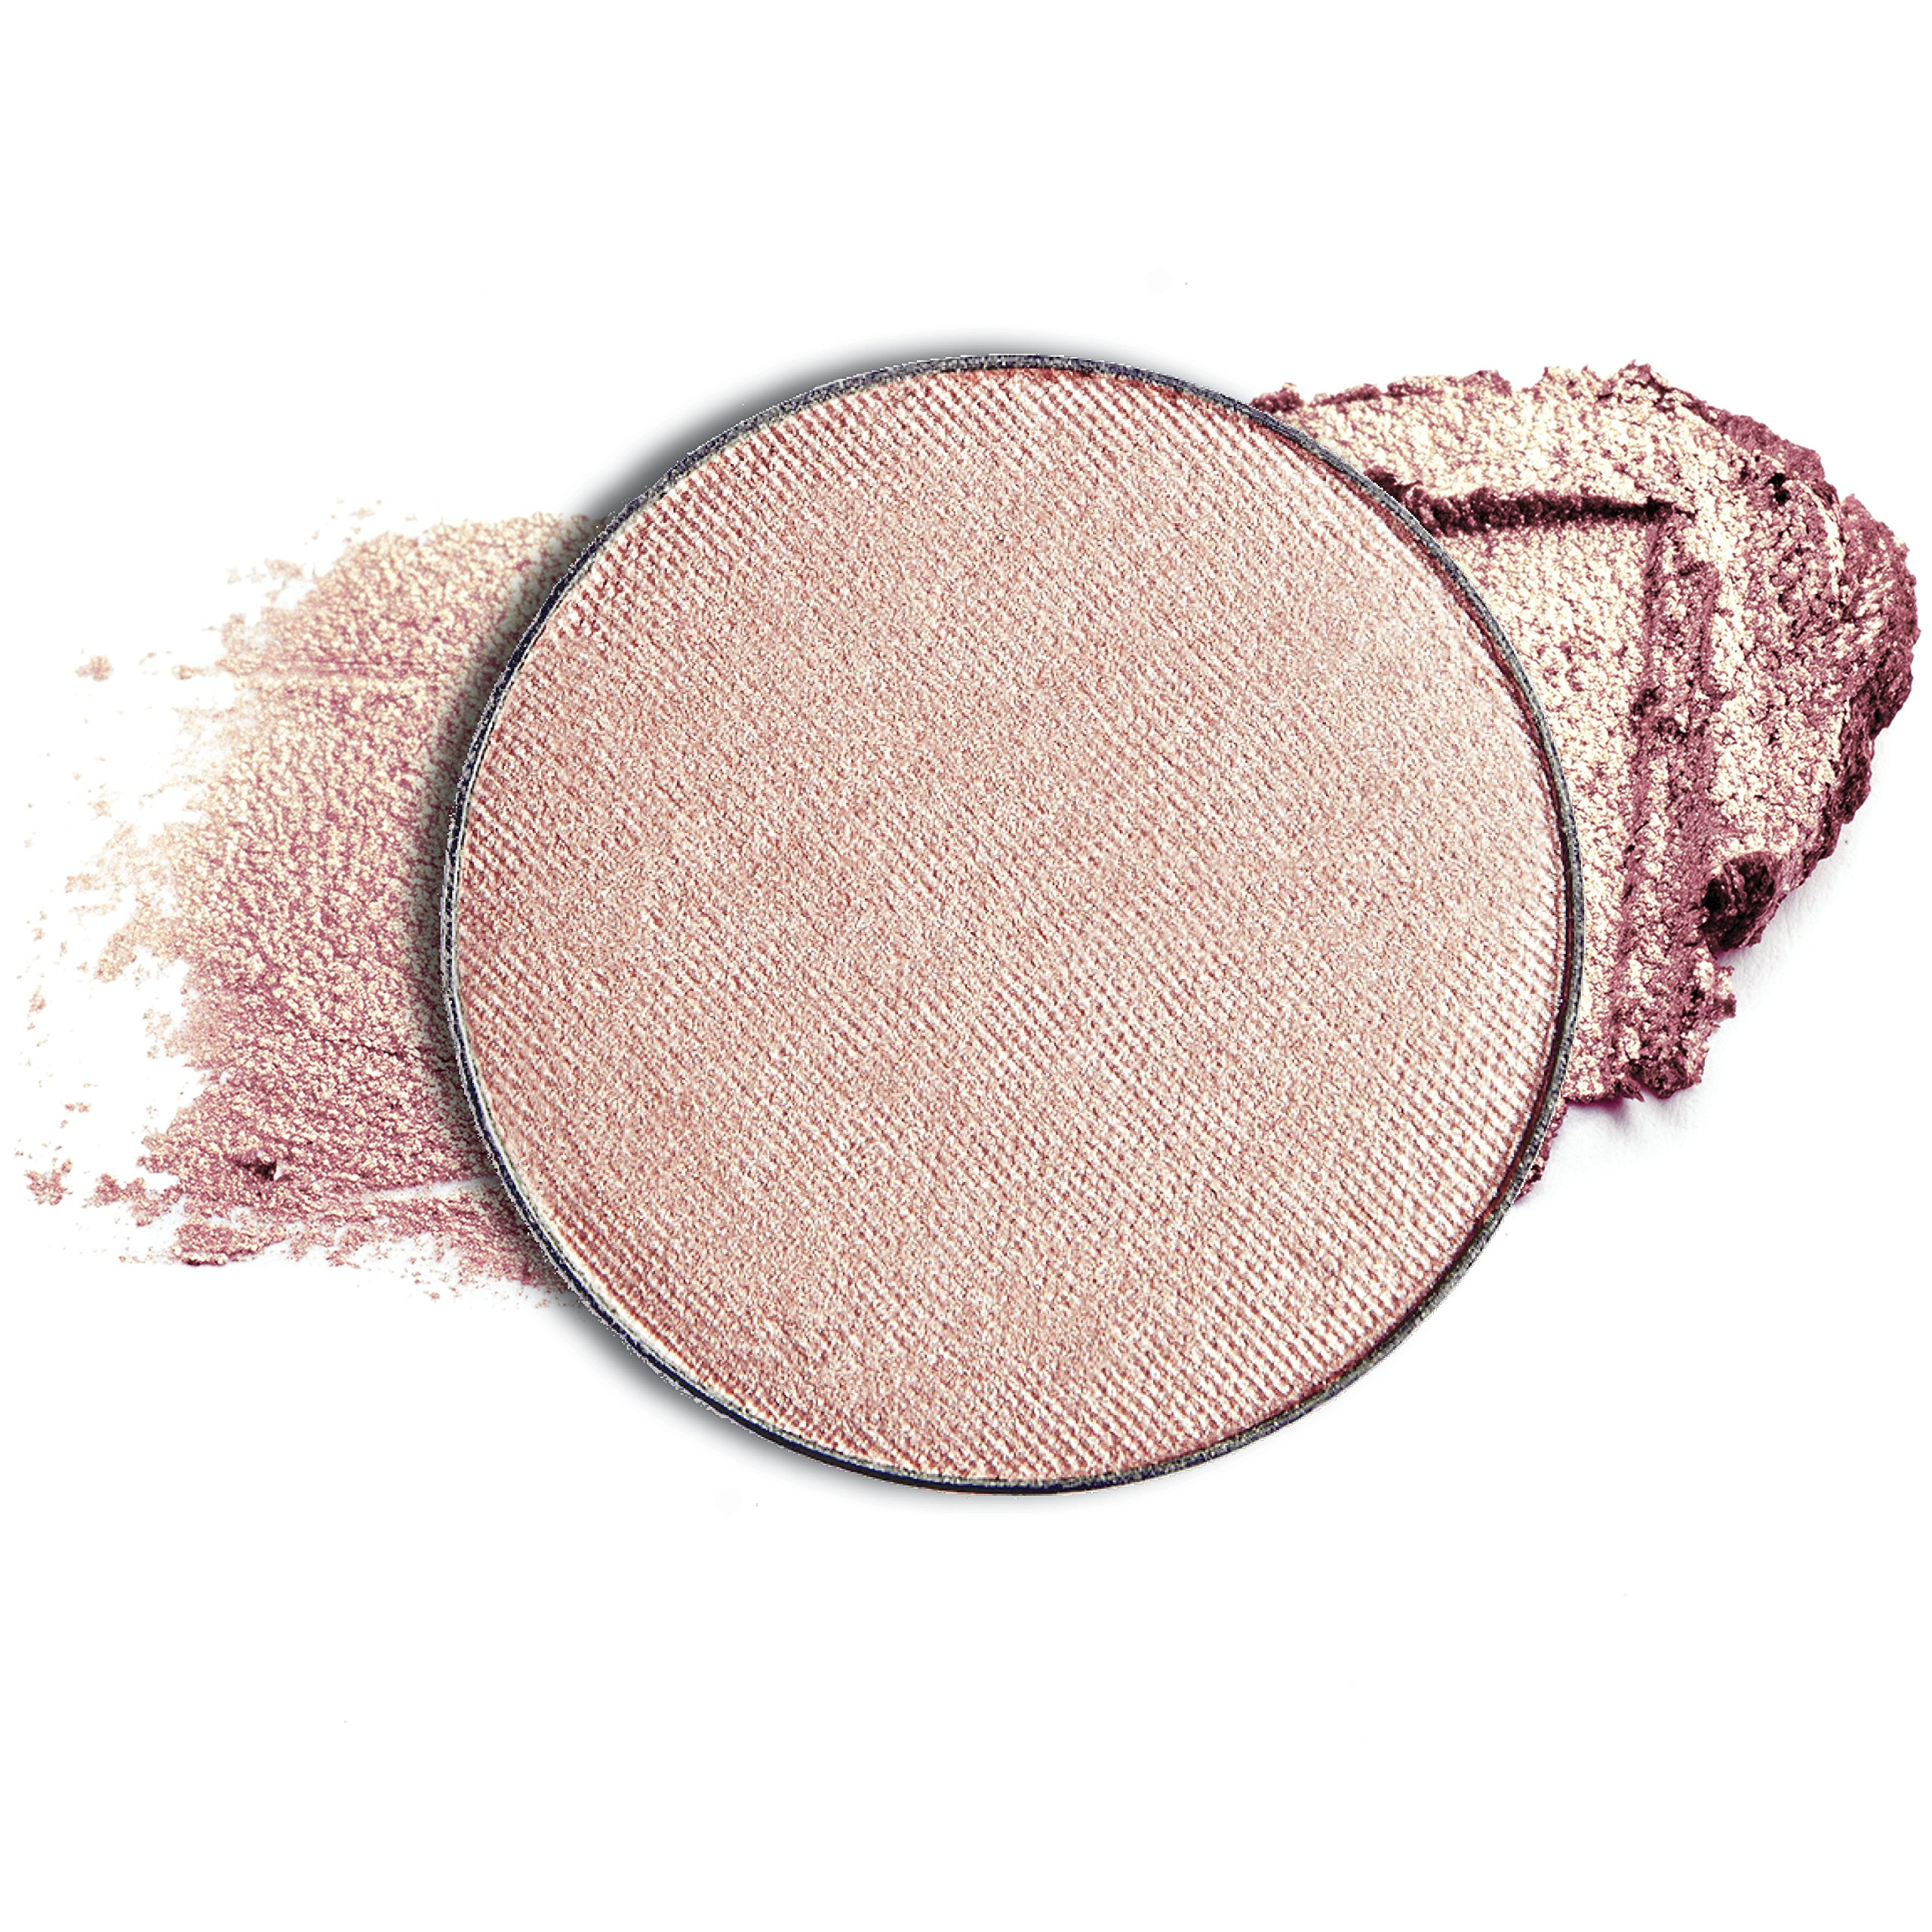 Dollup Beauty Rose Gold Powder Blusher, Bronzer & Highlighter — Shimmering Light Catching Pressed Powder For Face & Body. Pan-only. Color Pink Glow.